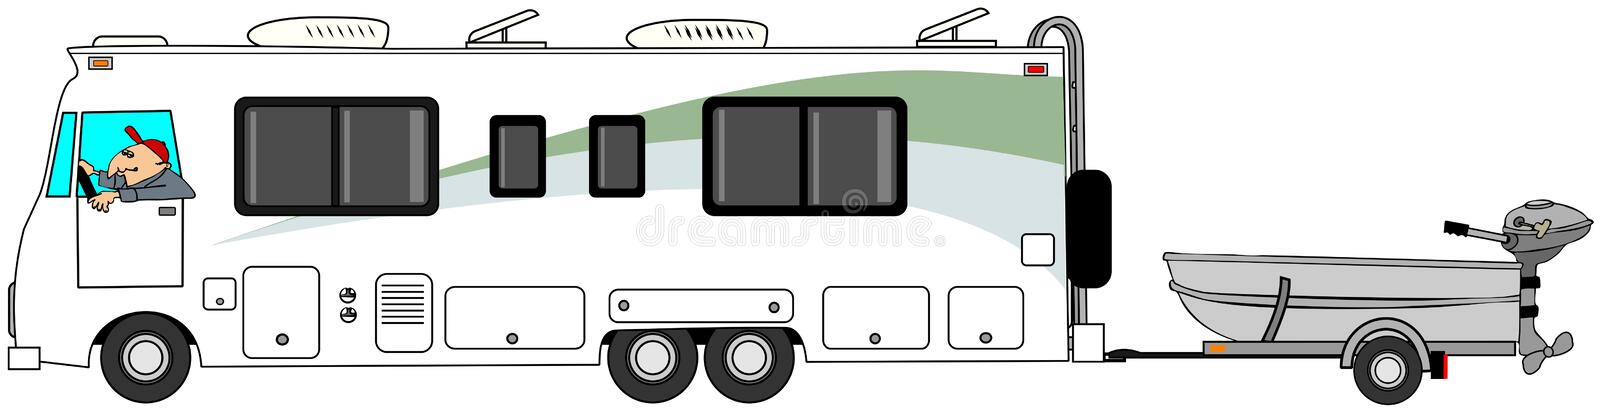 Class A motorhome towing a small fishing boat. Illustration of a man driving a class A motorhome and towing a small aluminum fishing boat stock illustration